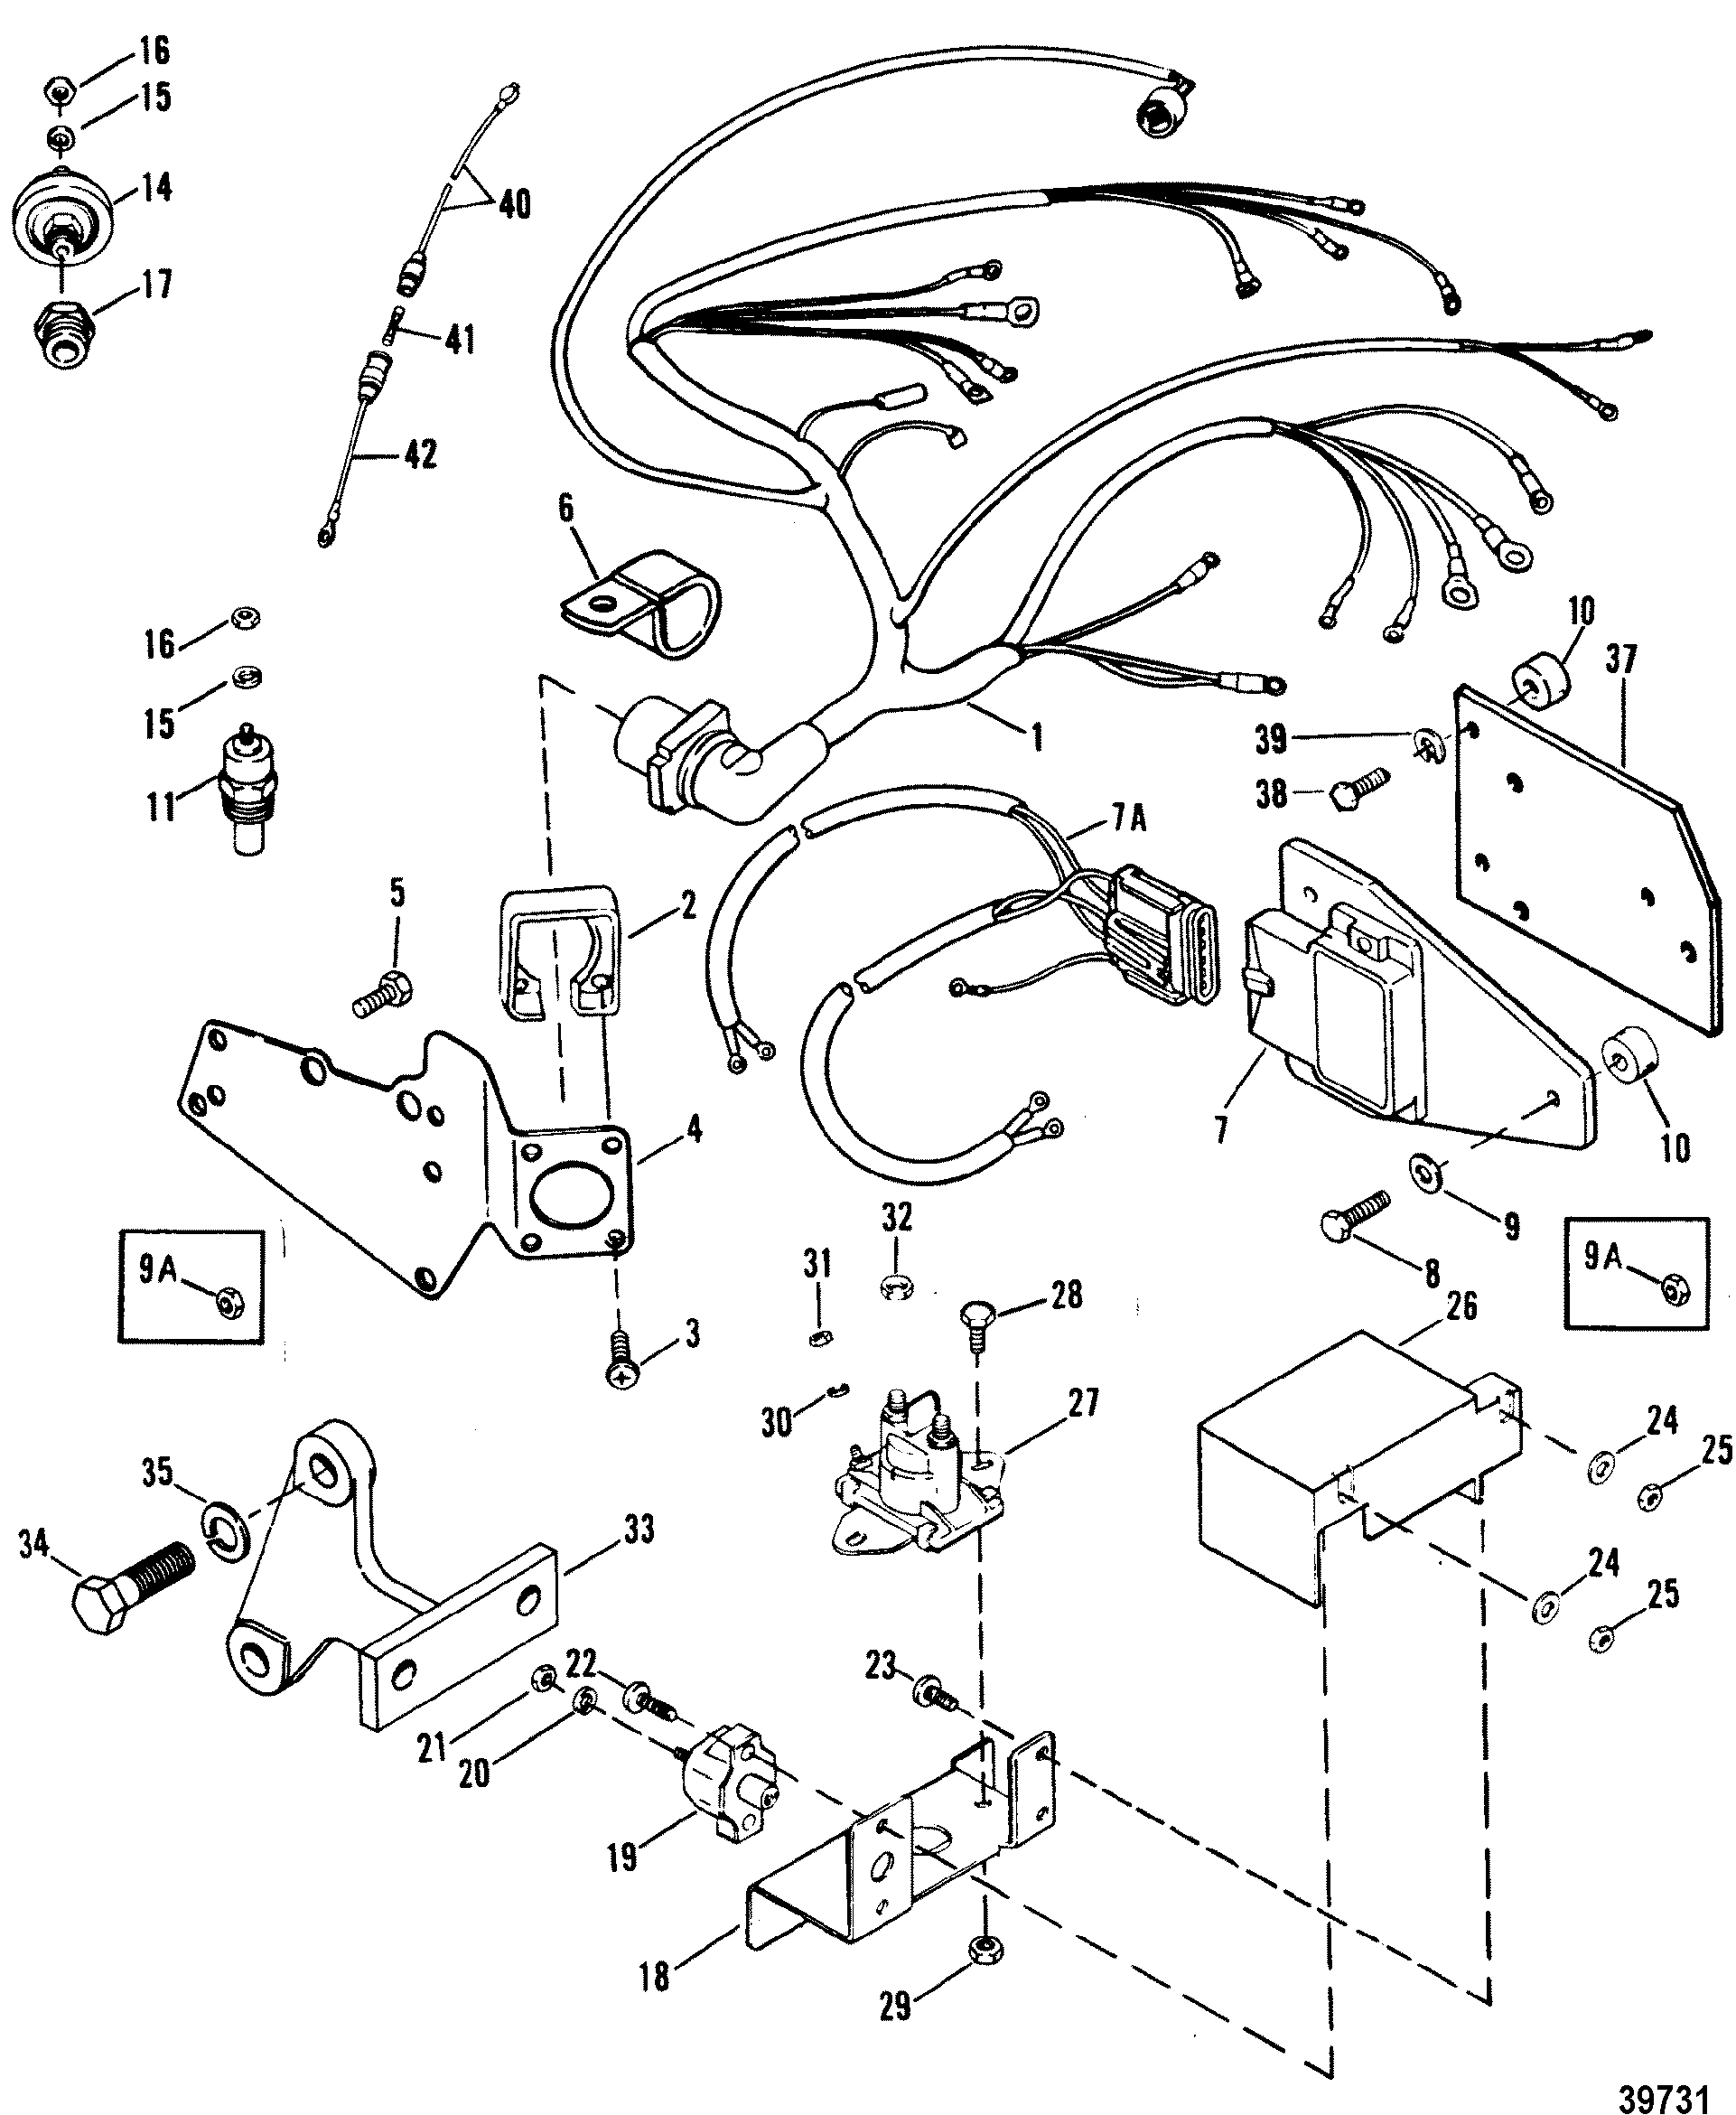 39731 wiring harness, electrical and ignition for mercruiser 7 4l bravo mercruiser wiring harness at gsmportal.co